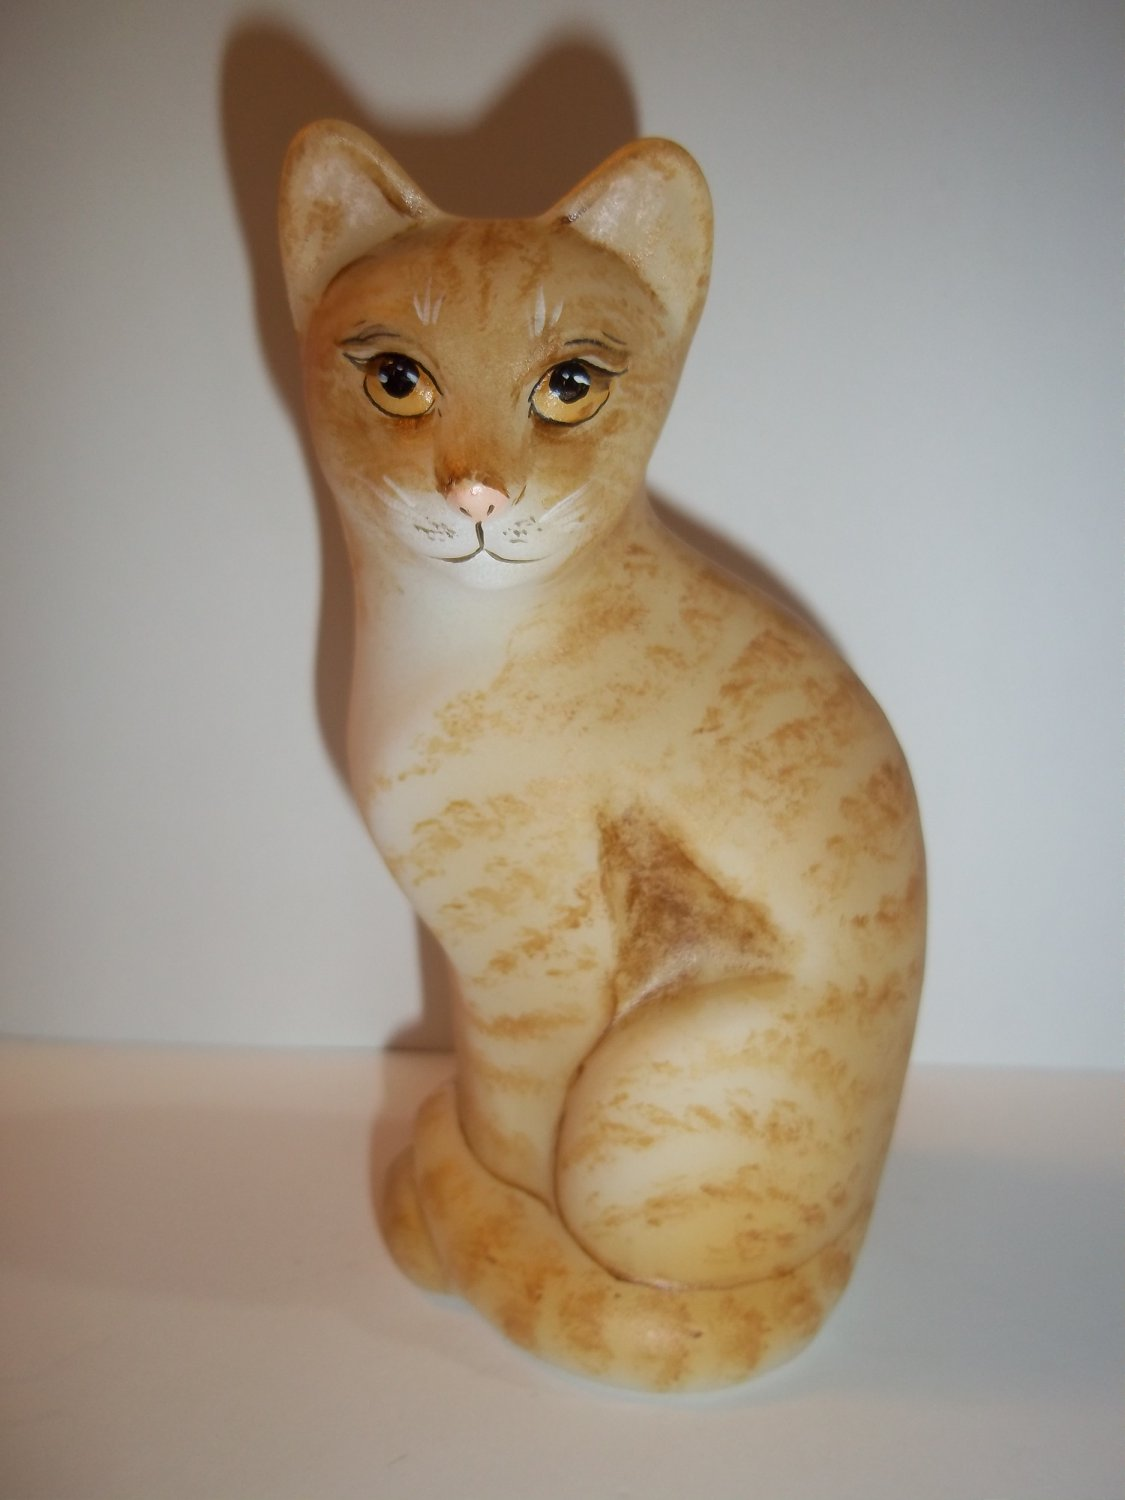 Fenton Glass Naural Orange Tabby Stylized Cat Kitten GSE Ltd Ed M Kibbe #2/22